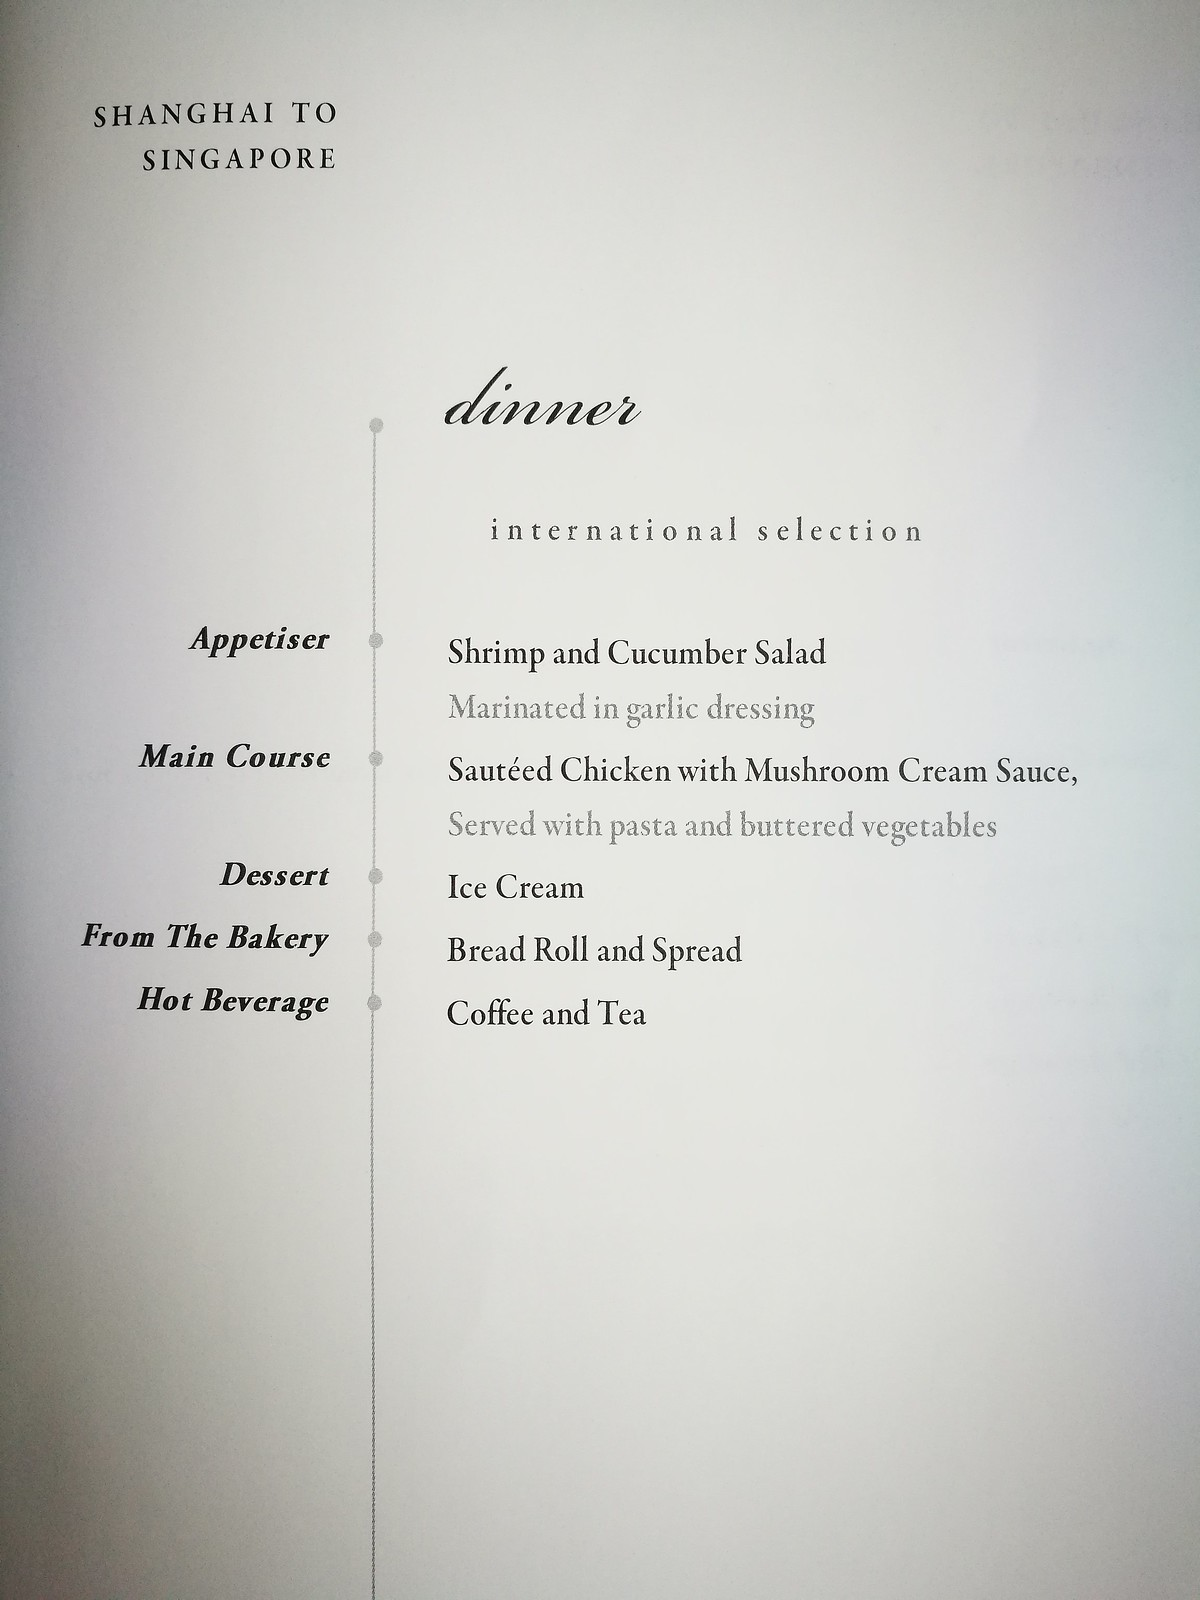 International dinner menu